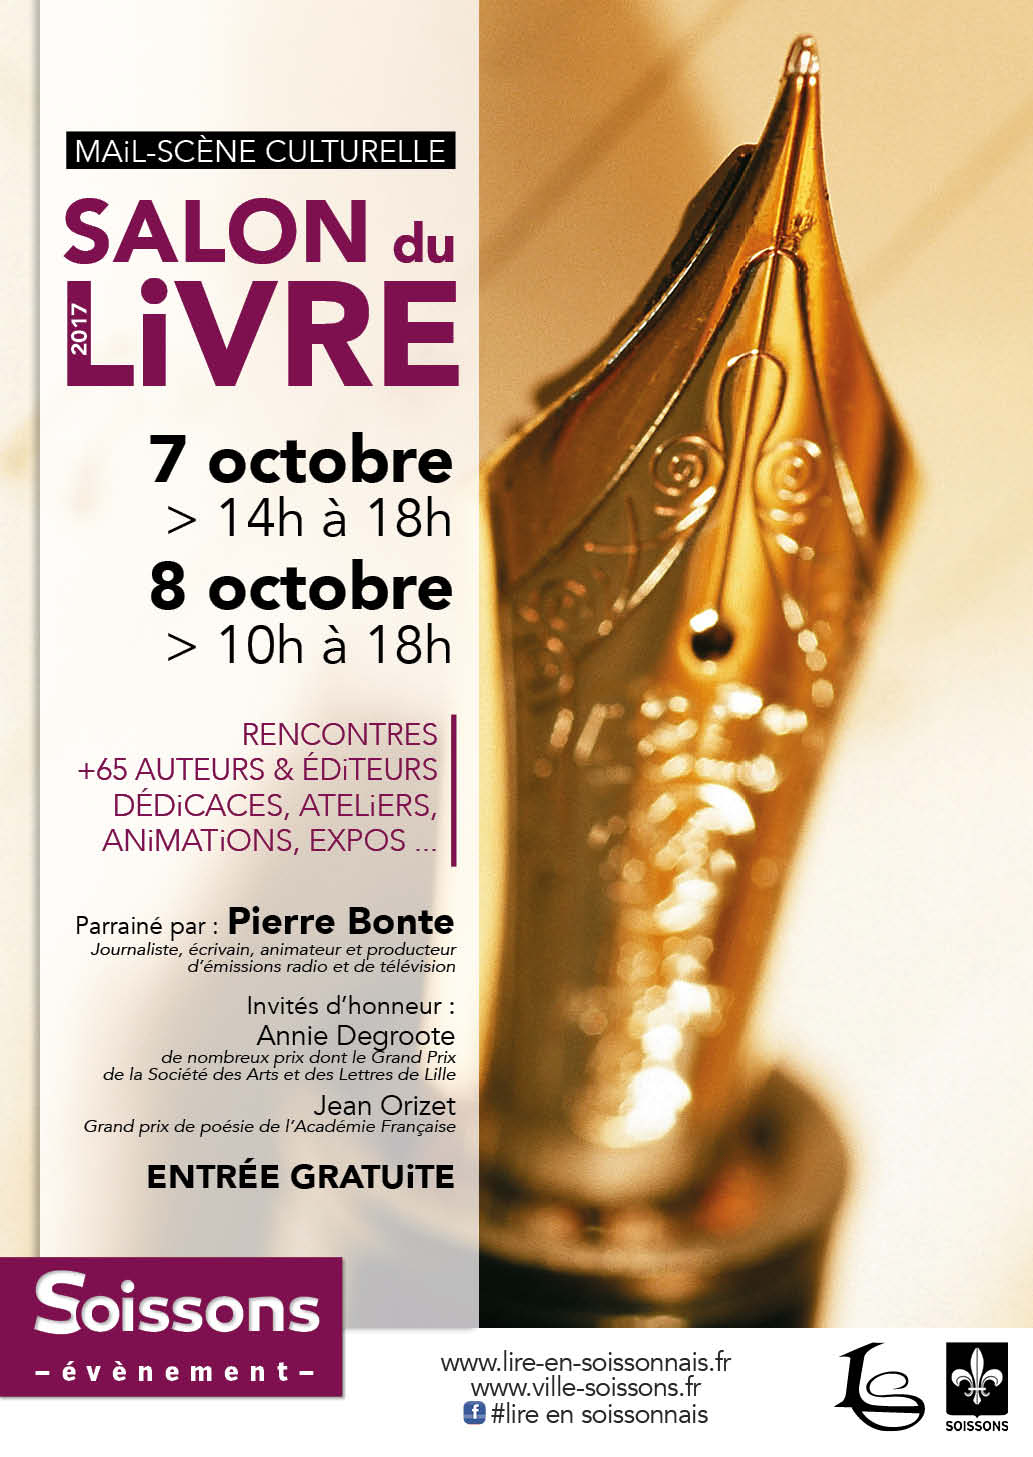 Salon du livre 2017 on y arrive lire en soissonnais for Salon du livre a troyes